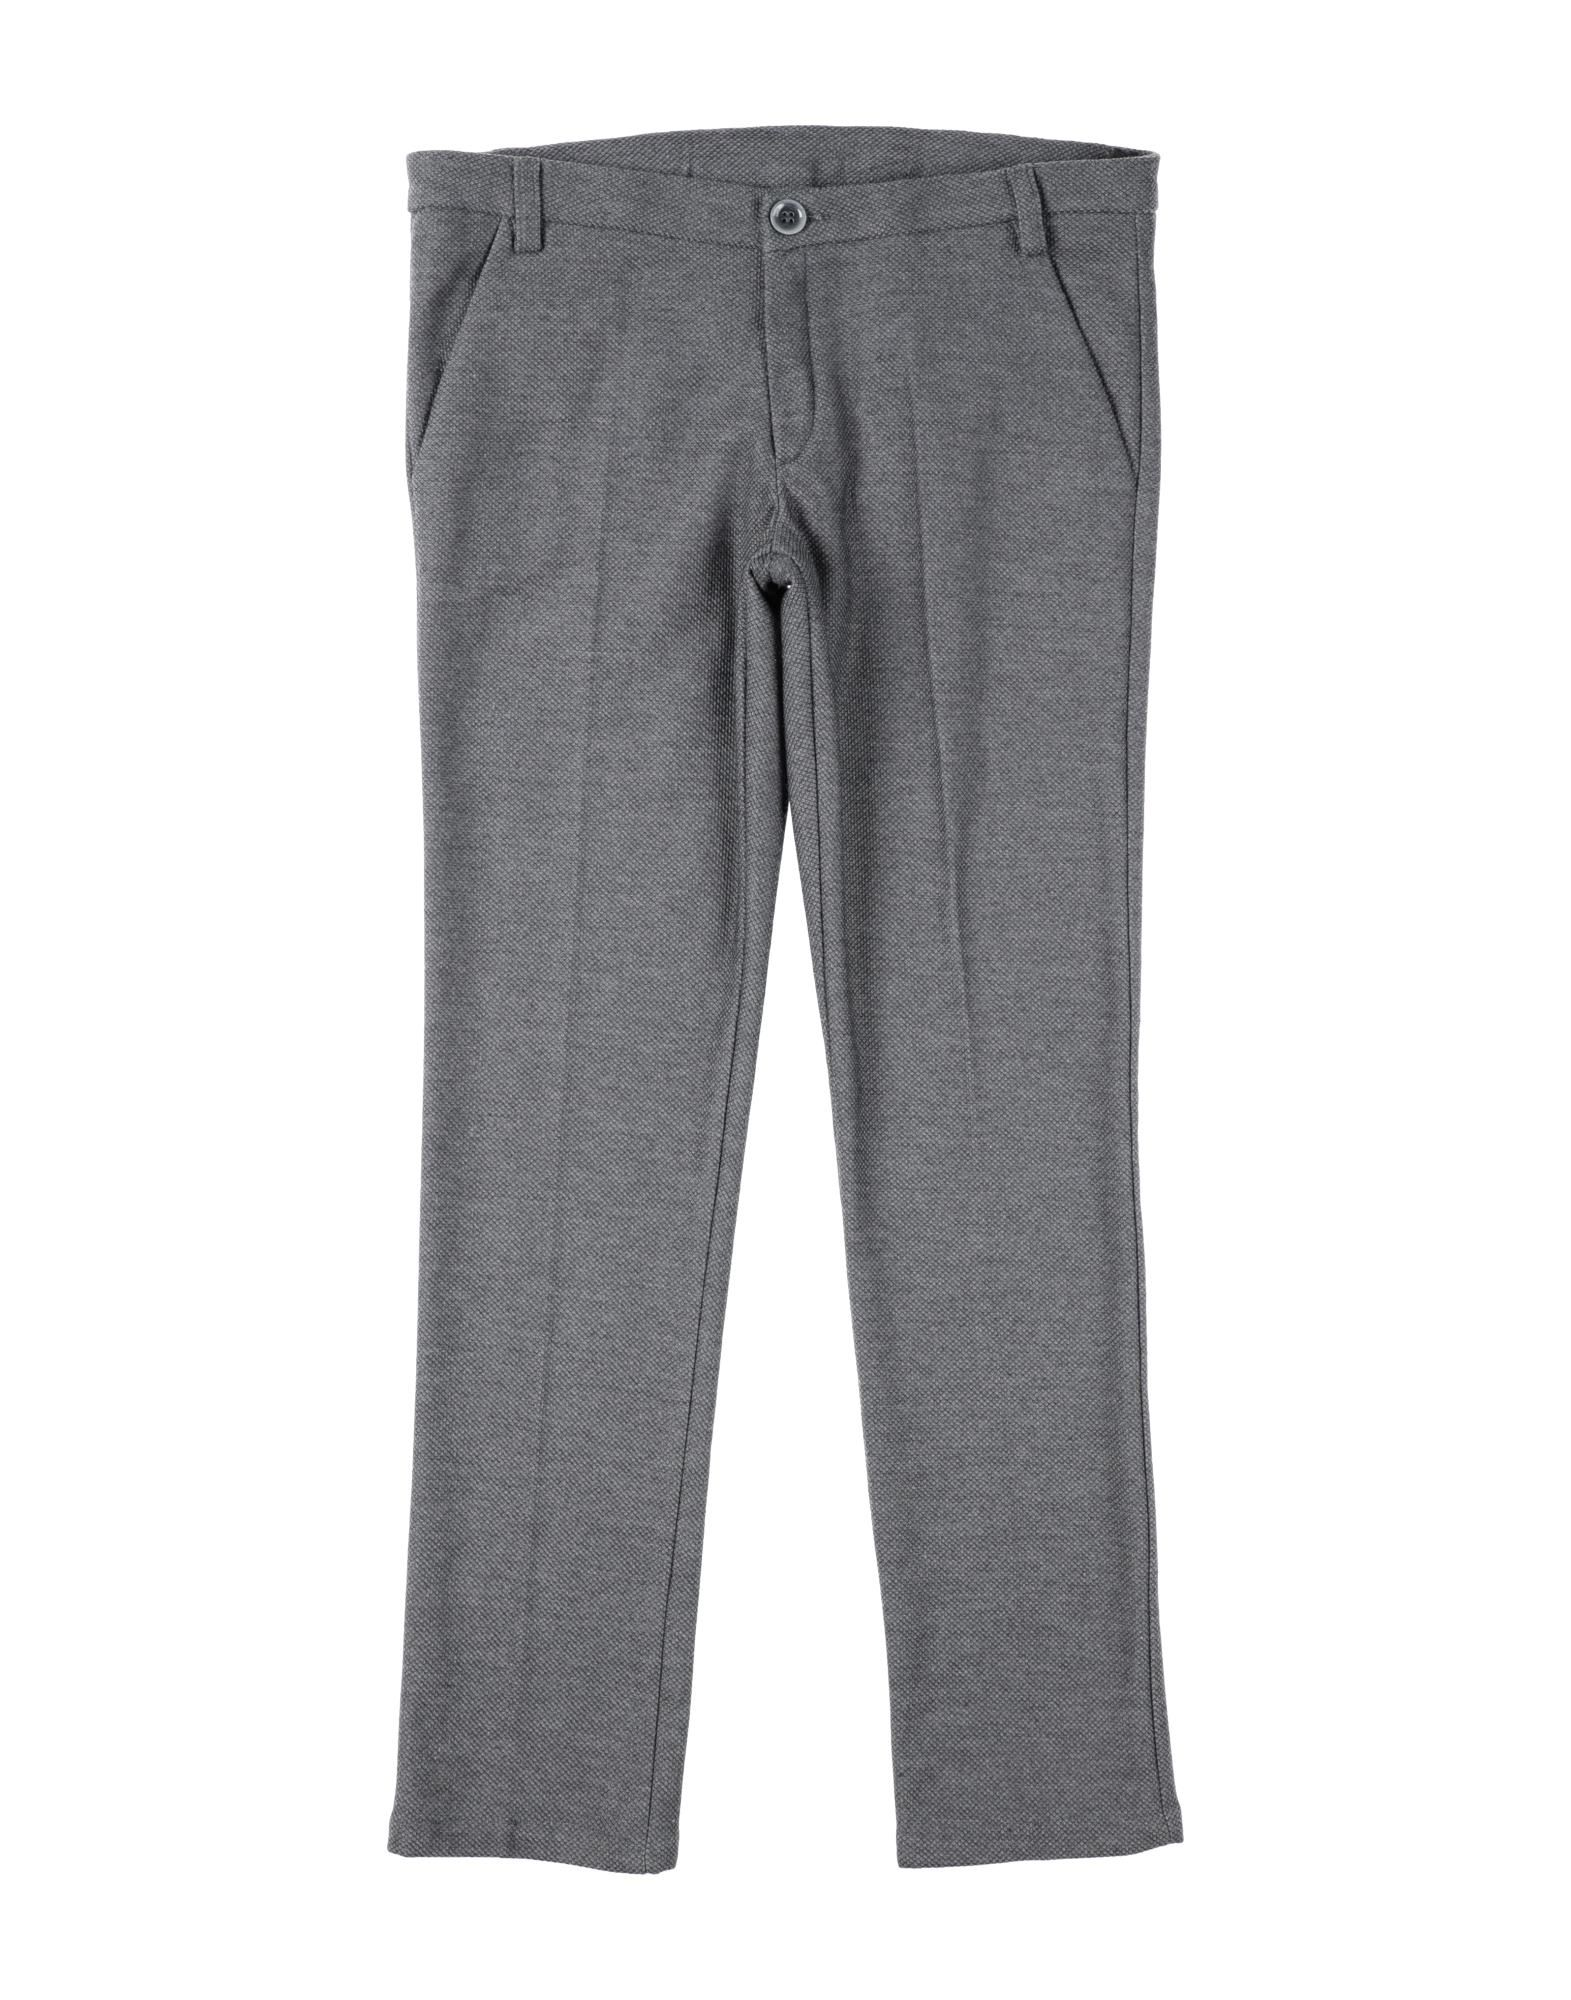 Manuell & Frank Kids' Casual Pants In Gray